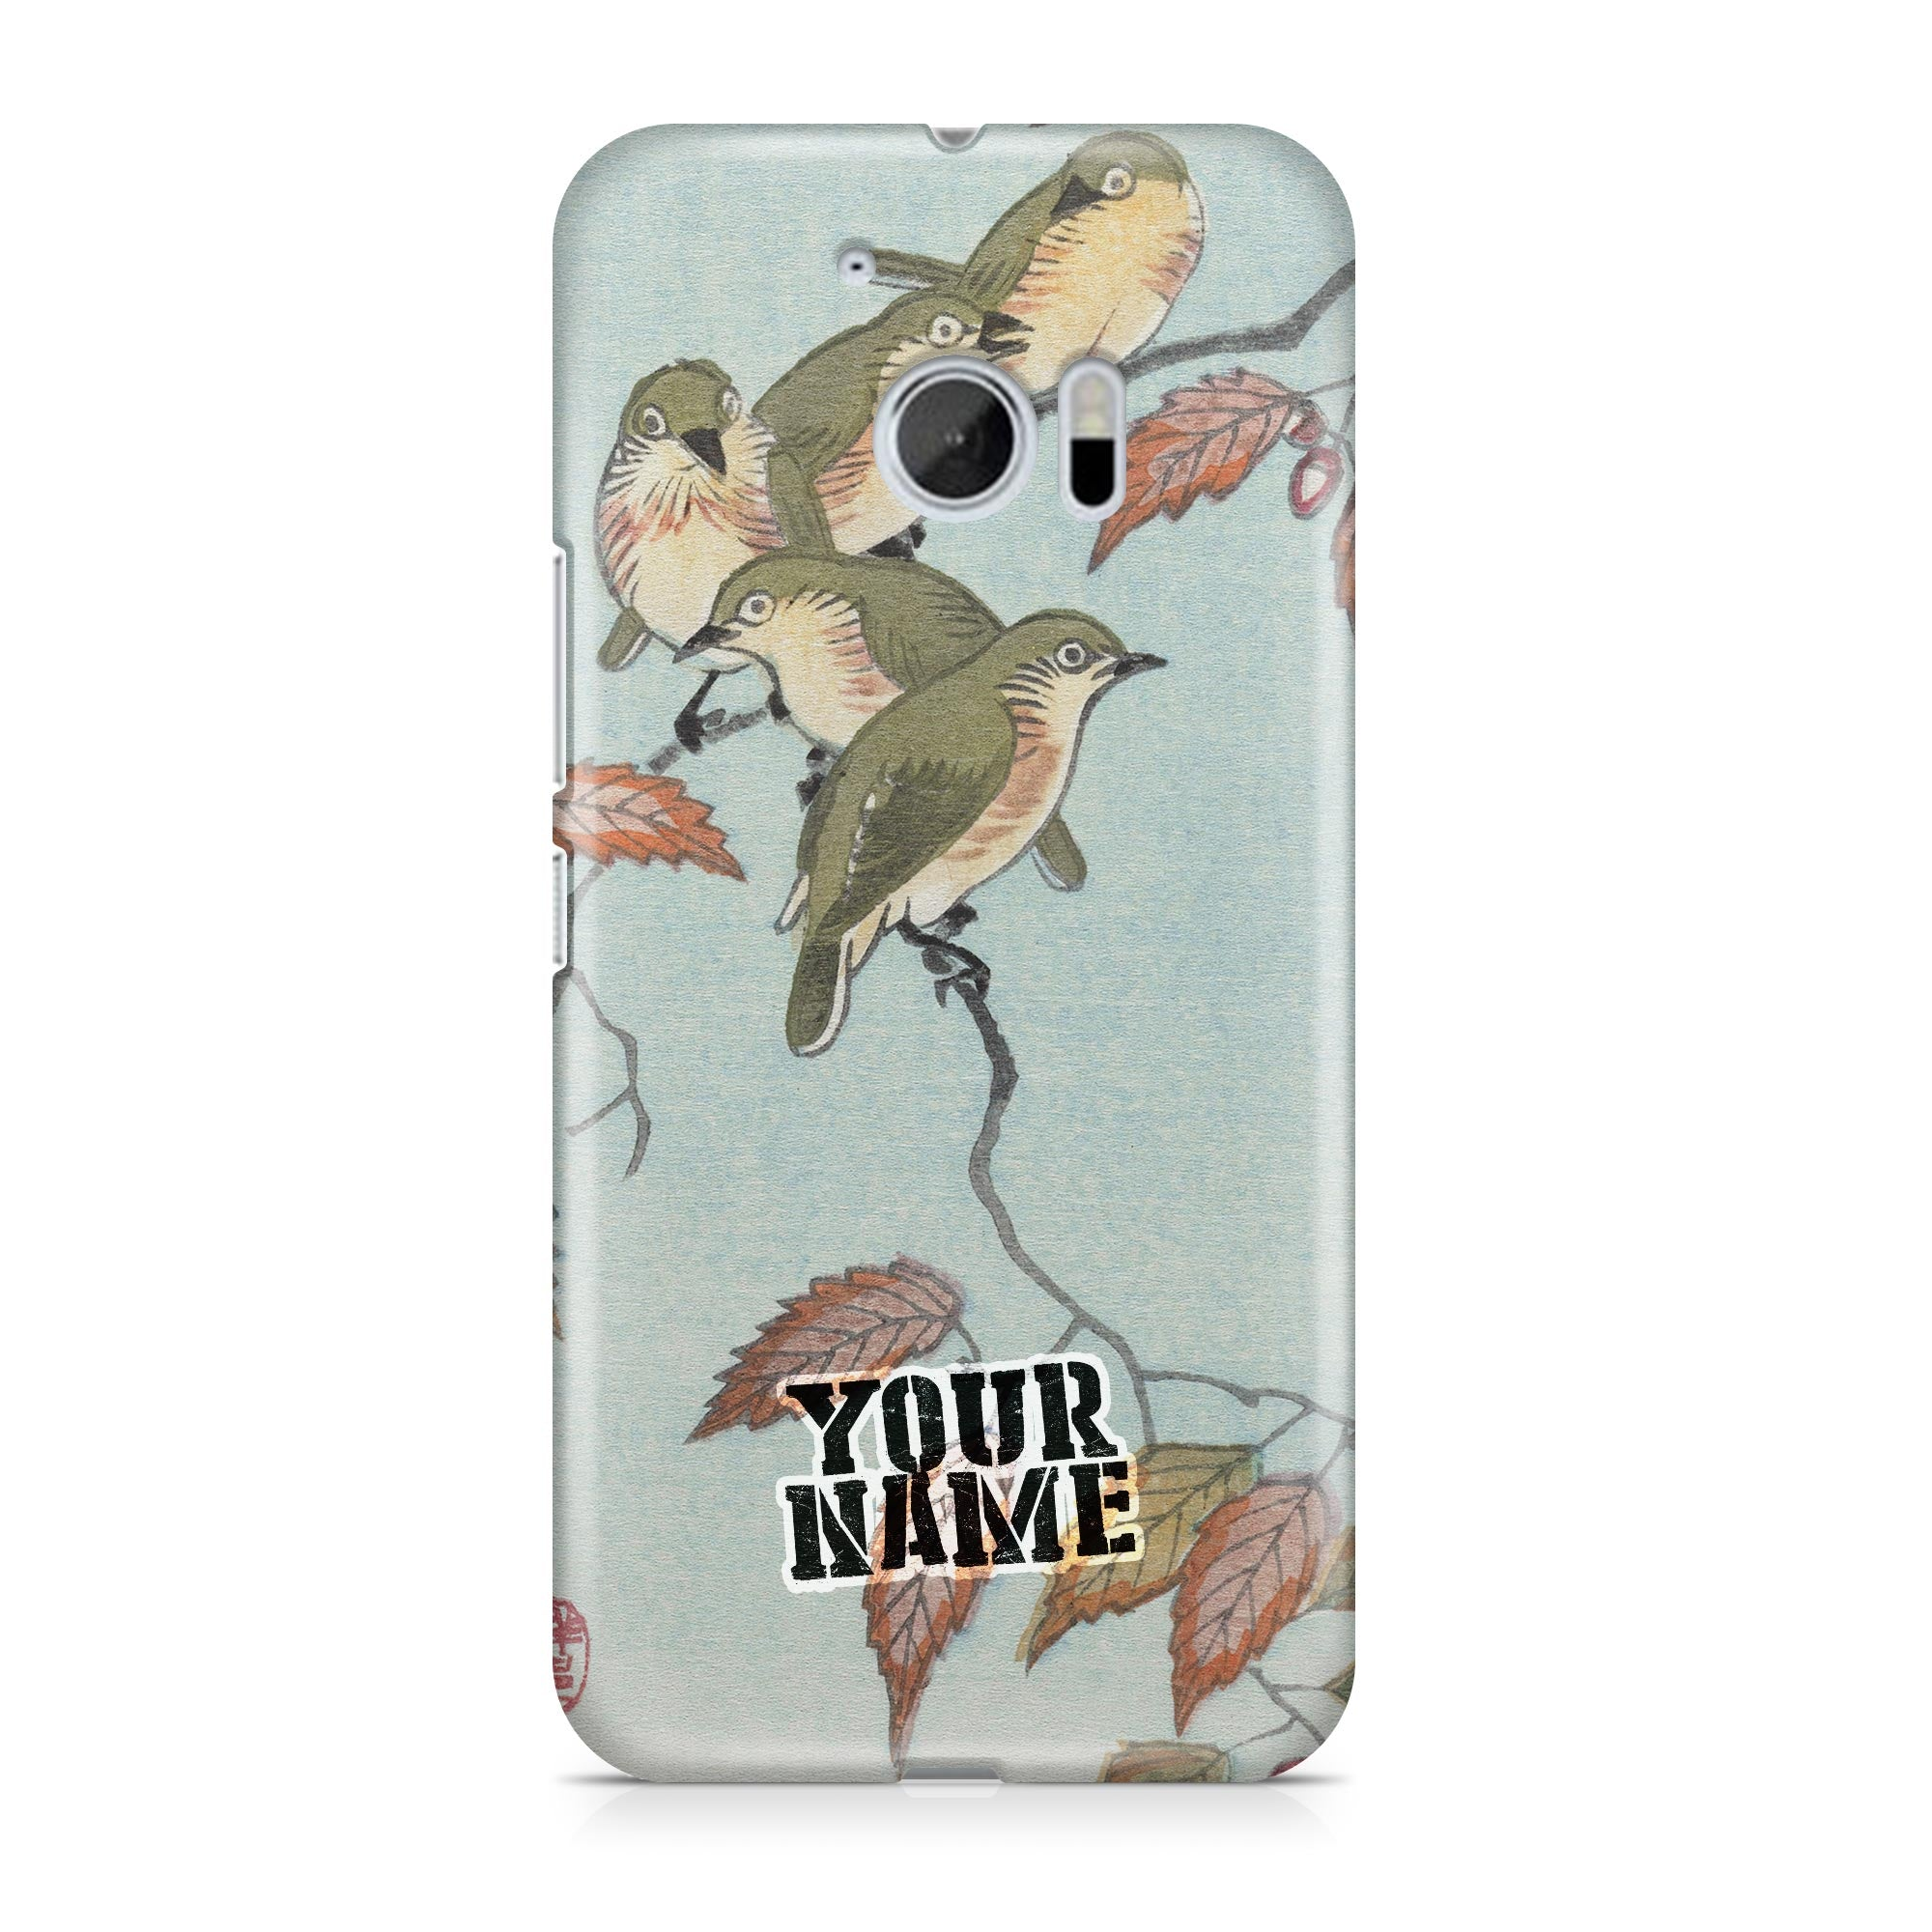 Four Birds Pidgey Green Leaf Phone Cases Cover